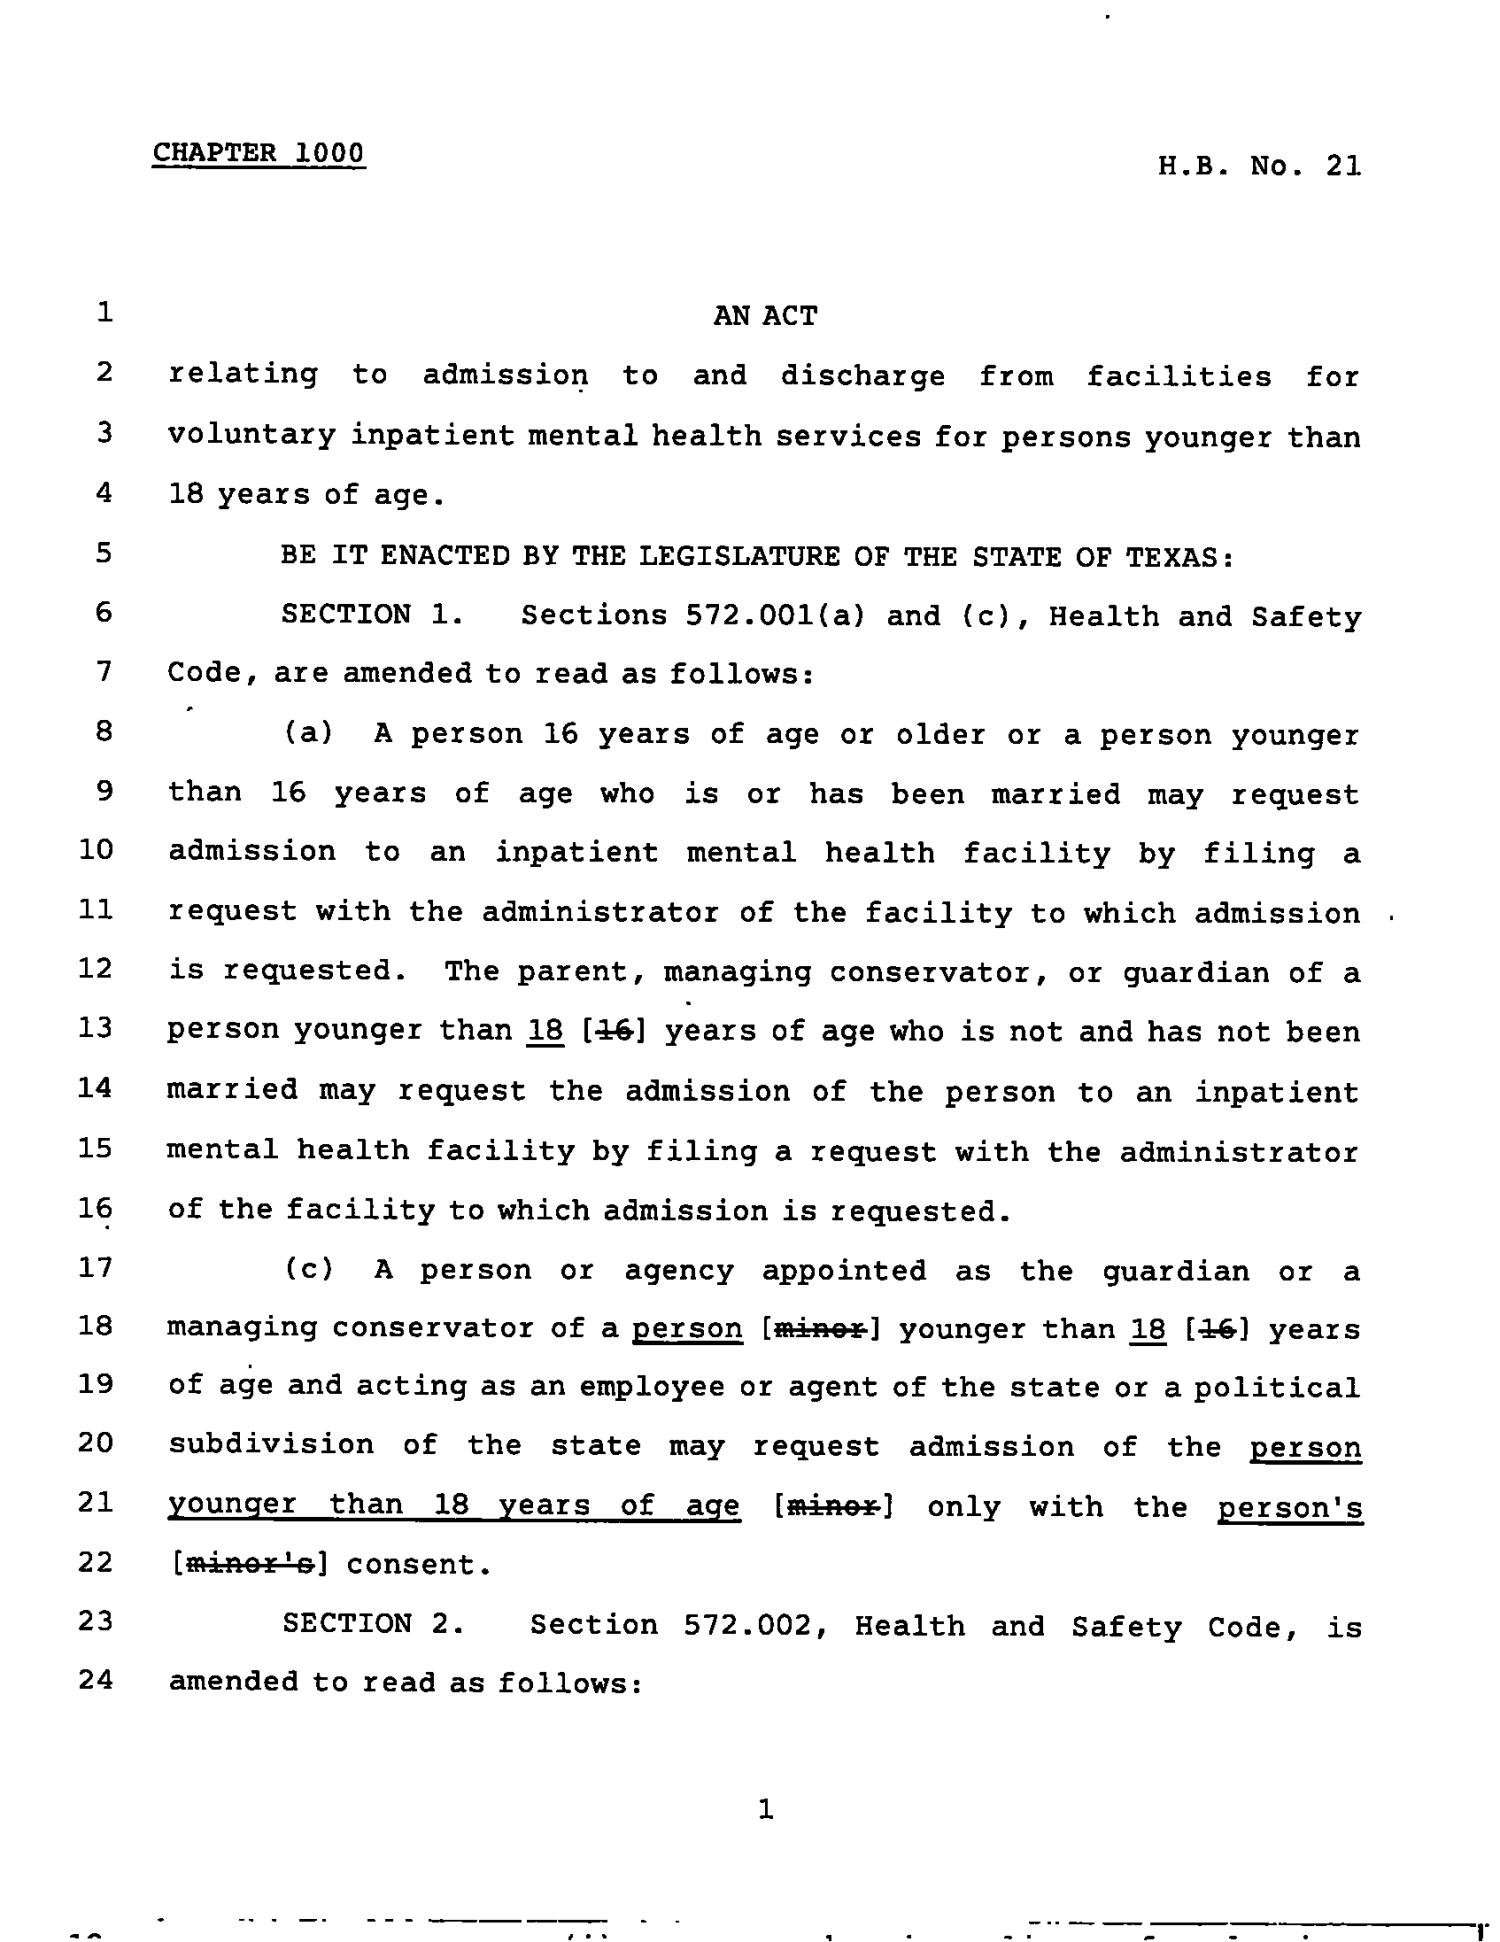 78th Texas Legislature, Regular Session, House Bill 21, Chapter 1000                                                                                                      [Sequence #]: 1 of 4